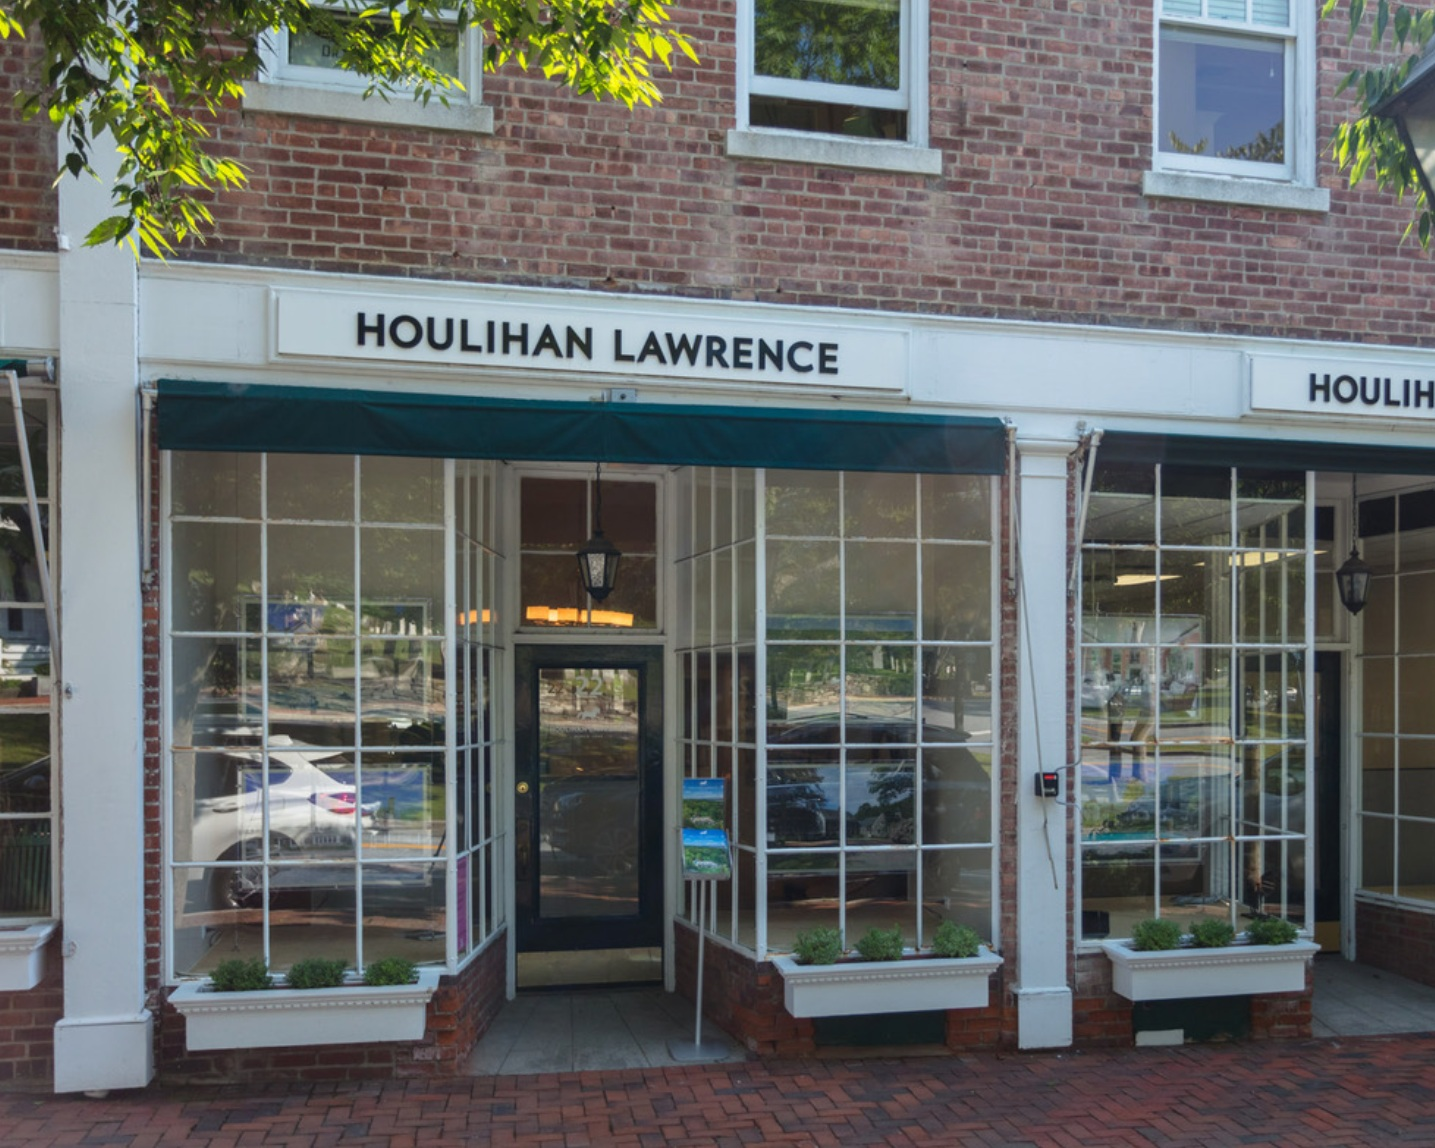 Houlihan Lawrence - Bedford/Pound Ridge Brokerage22 Village Green, Bedford☎︎ 914-234-9099